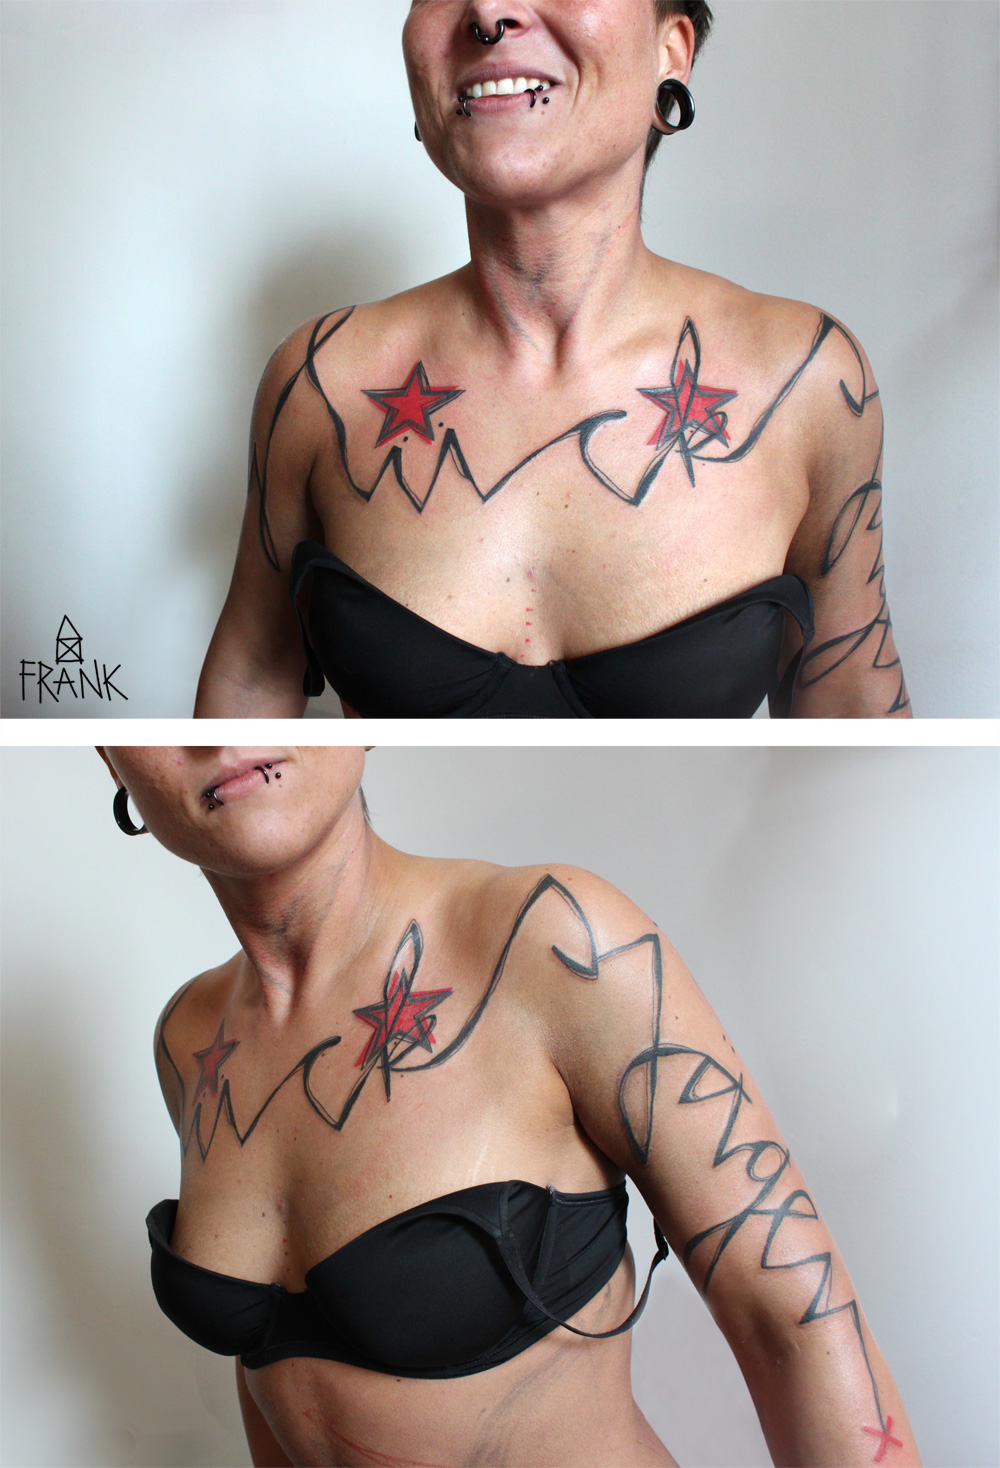 Miriam_frank_tattoo_type